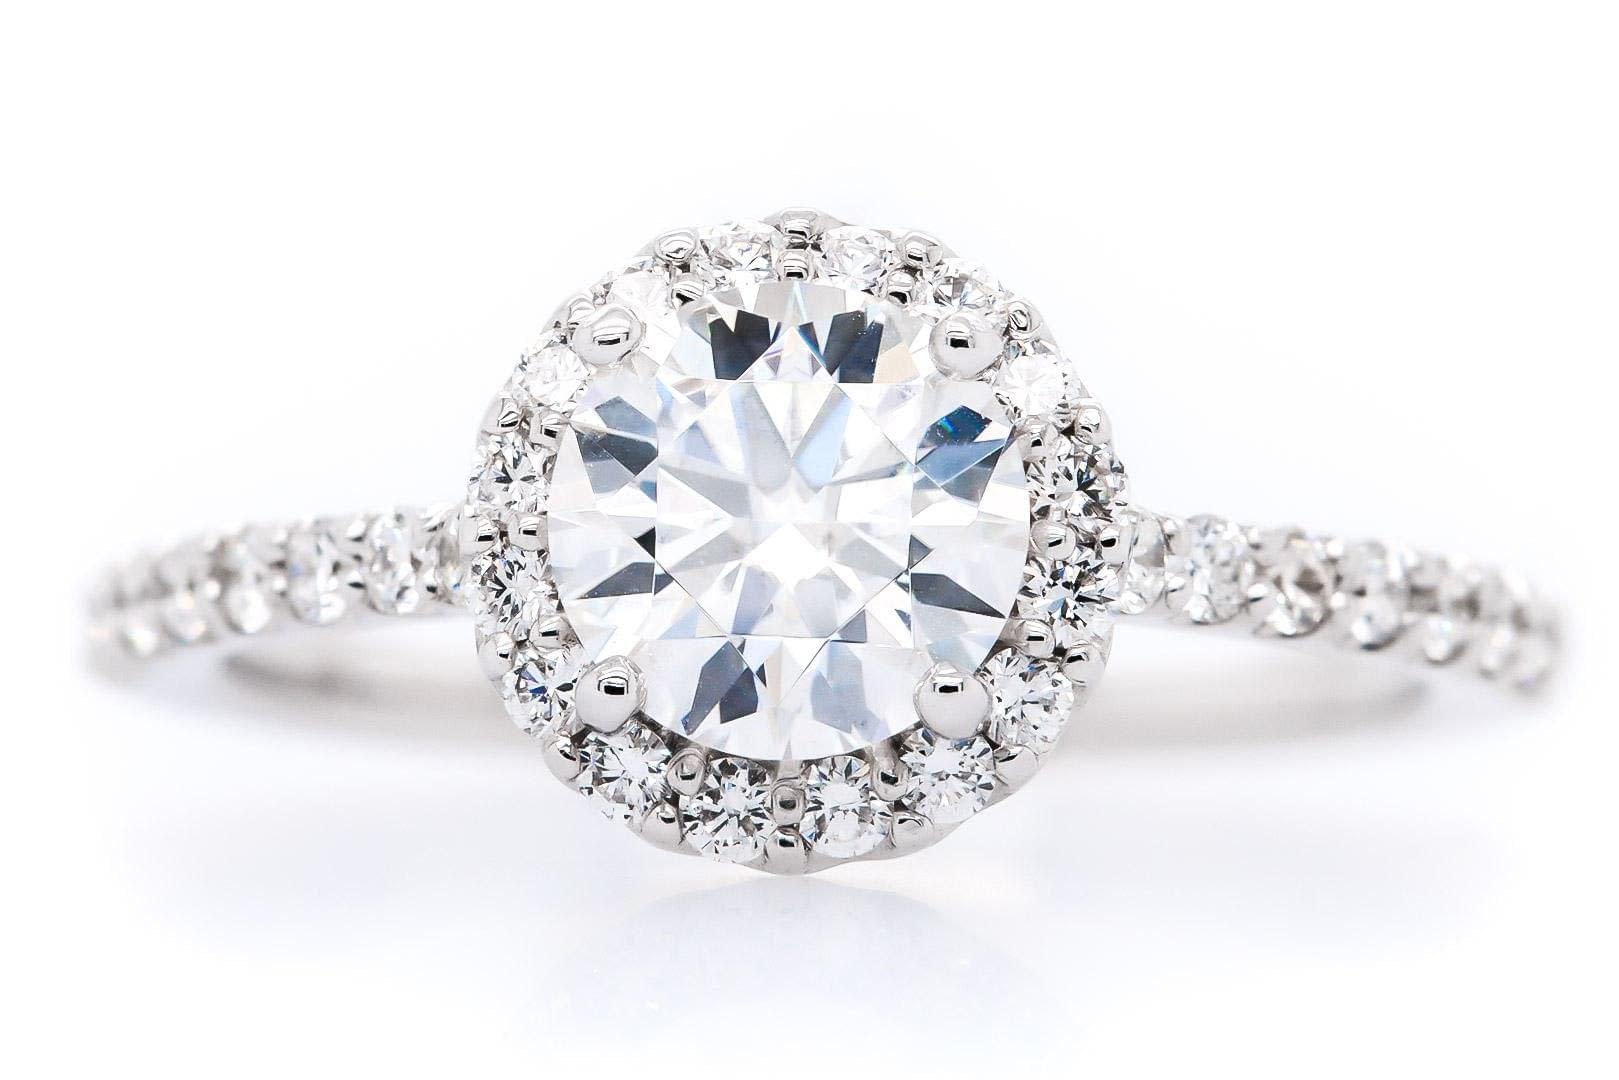 14 Karat White-Gold Halo Side Setting Engagement Ring with a 0.36 Carat setting around the Beautiful 1.35 Carat Round Cut Diamond in the Center.